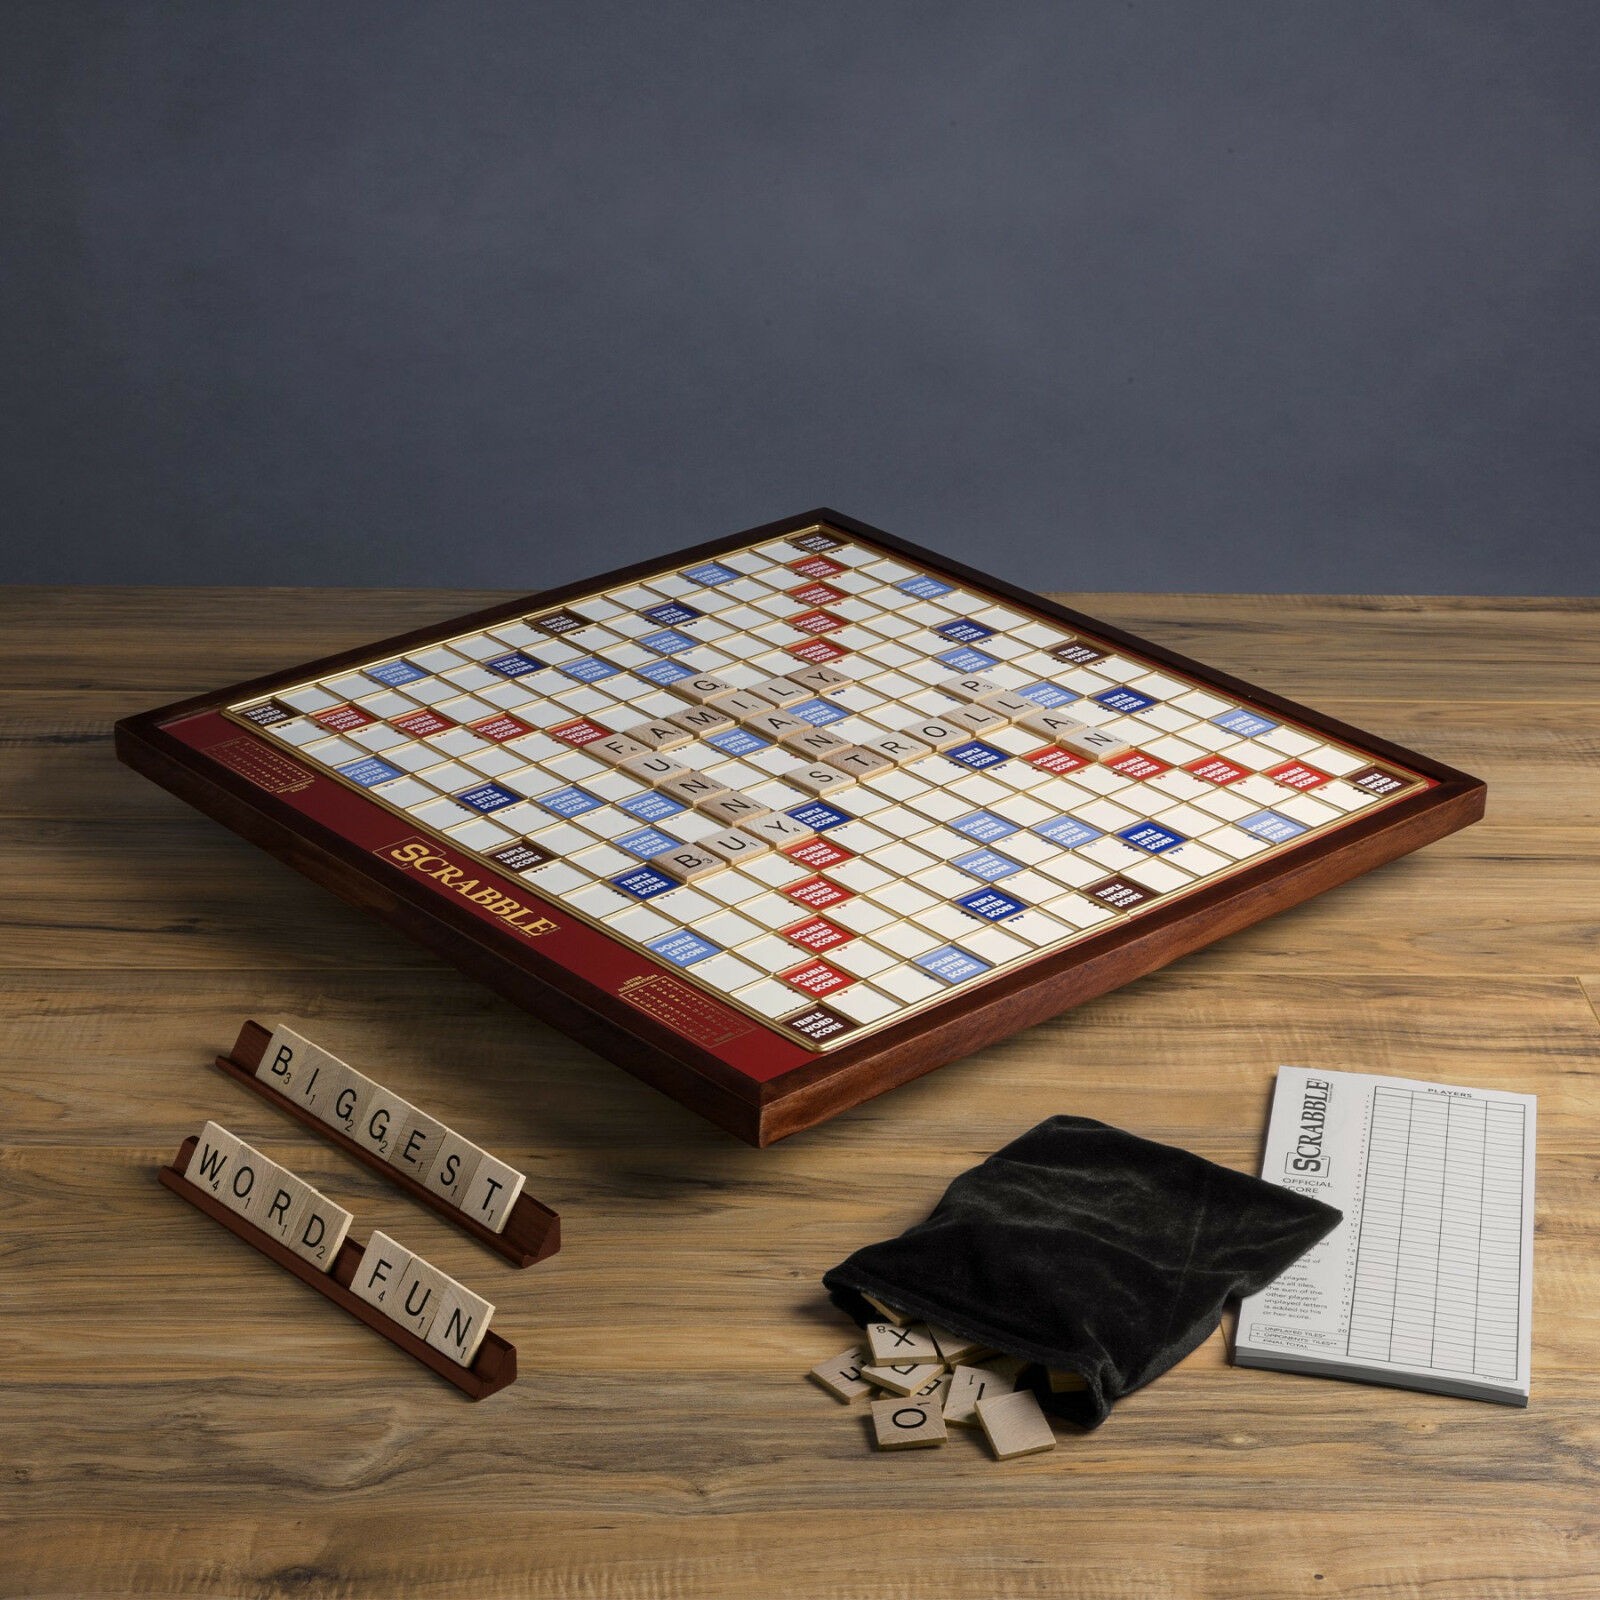 Scrabble Giant Giant Giant Deluxe Wooden Edition redating Wood Turntable Word Board Game New 08a152